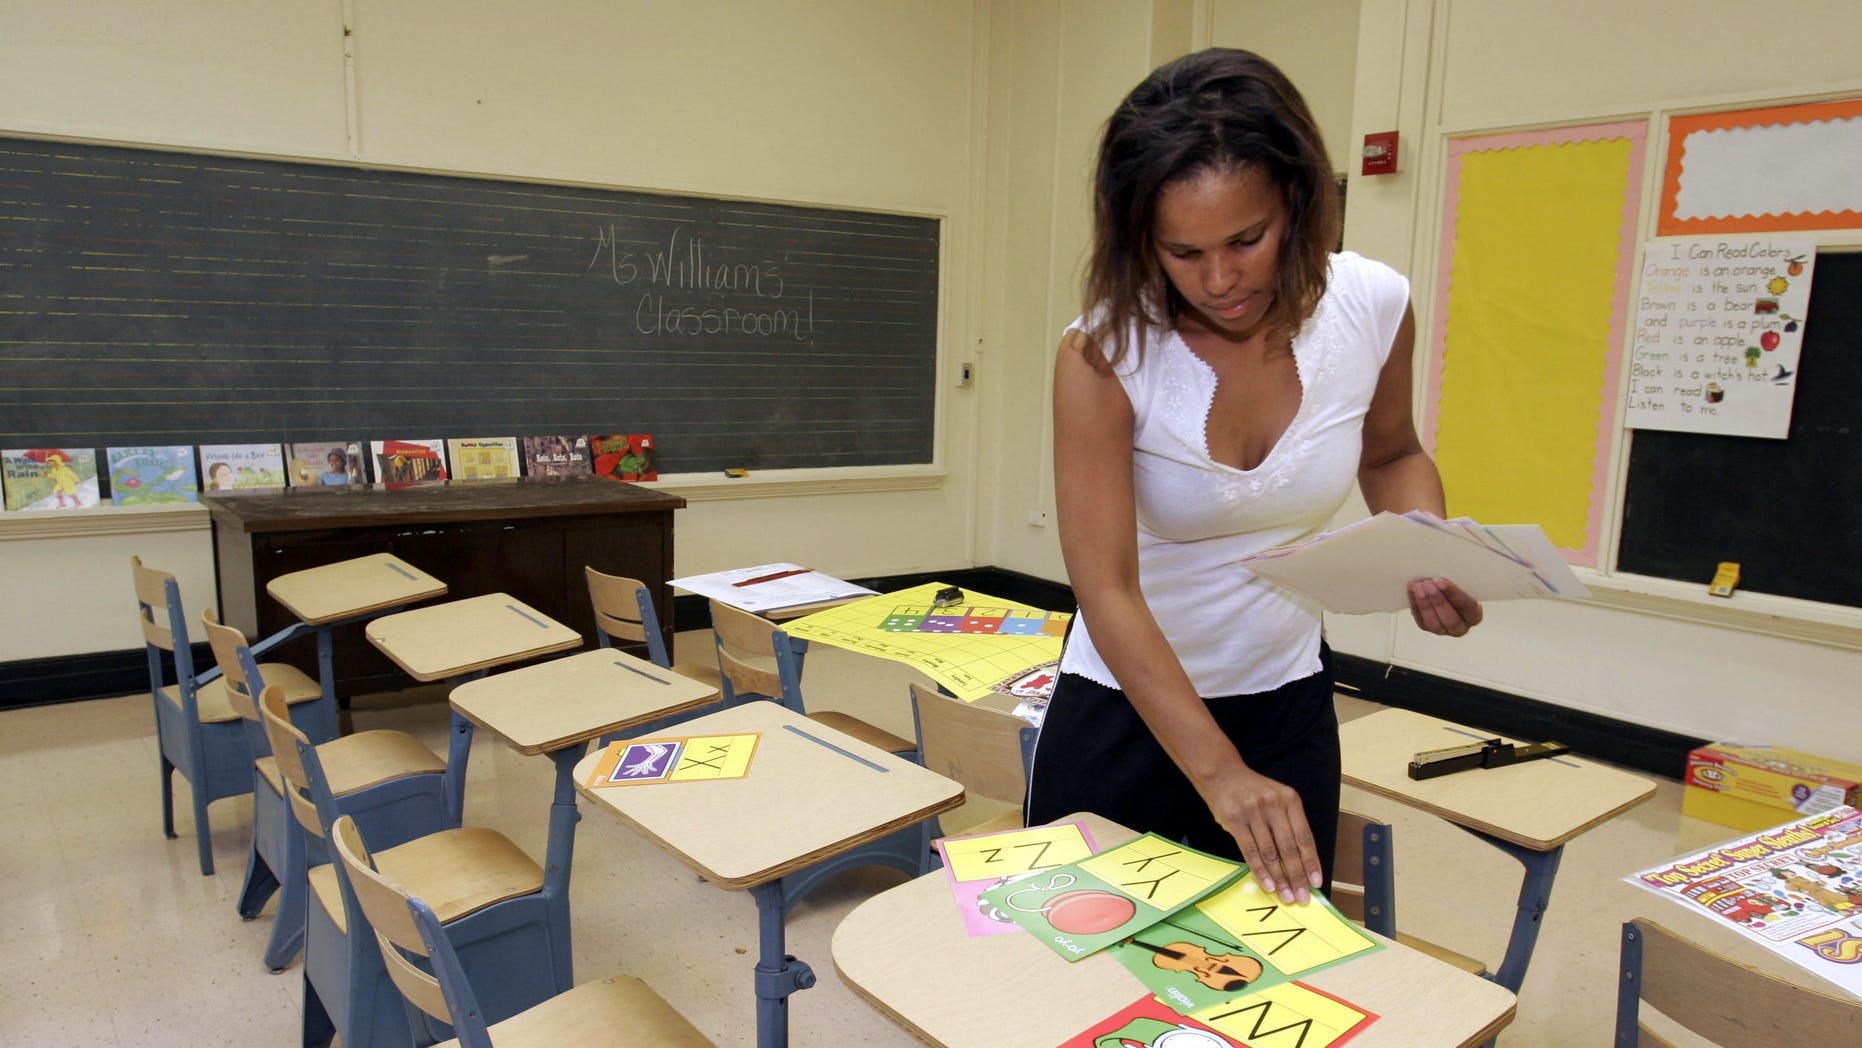 Ckaris Williams, a teacher and Hurricane Katrina evacuee, prepares her classroom at Douglass Elementary School in Houston September 7, 2005 in Houston,(Photo by Dave Einsel/Getty Images)